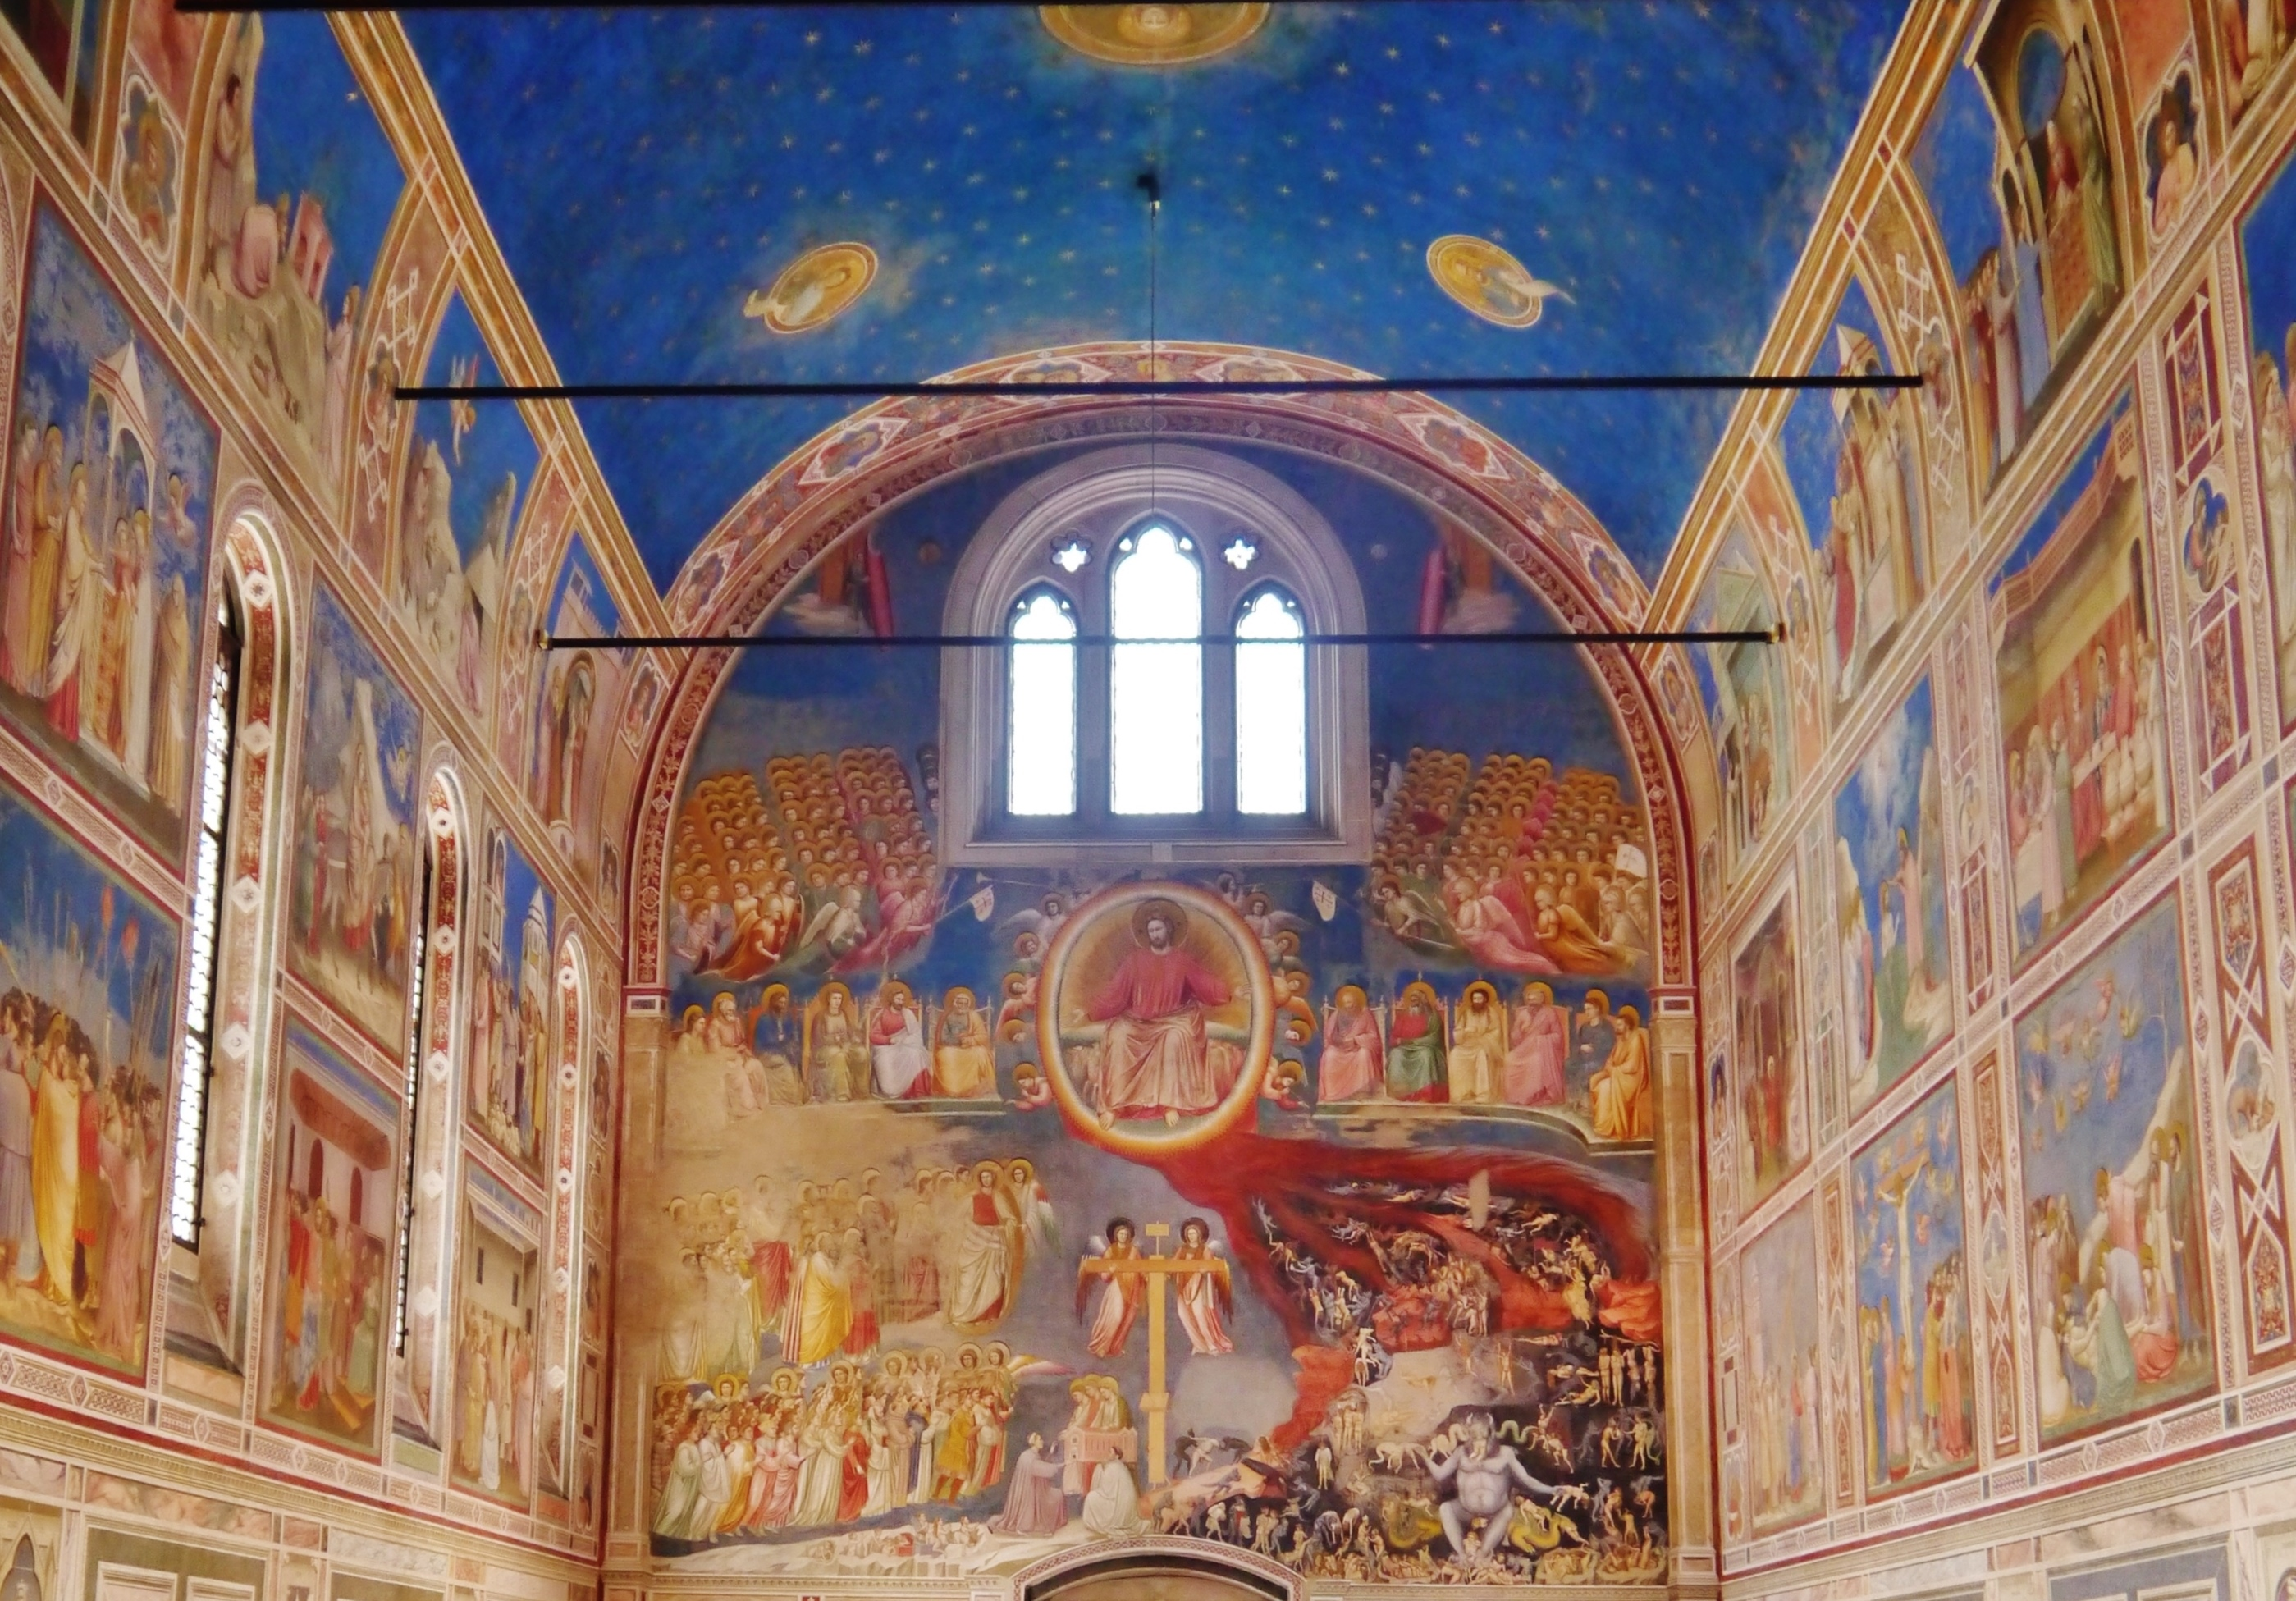 The nave of the Scrovegni Chapel in Padua, Italy. (Zairon/ CC BY-SA 4.0)